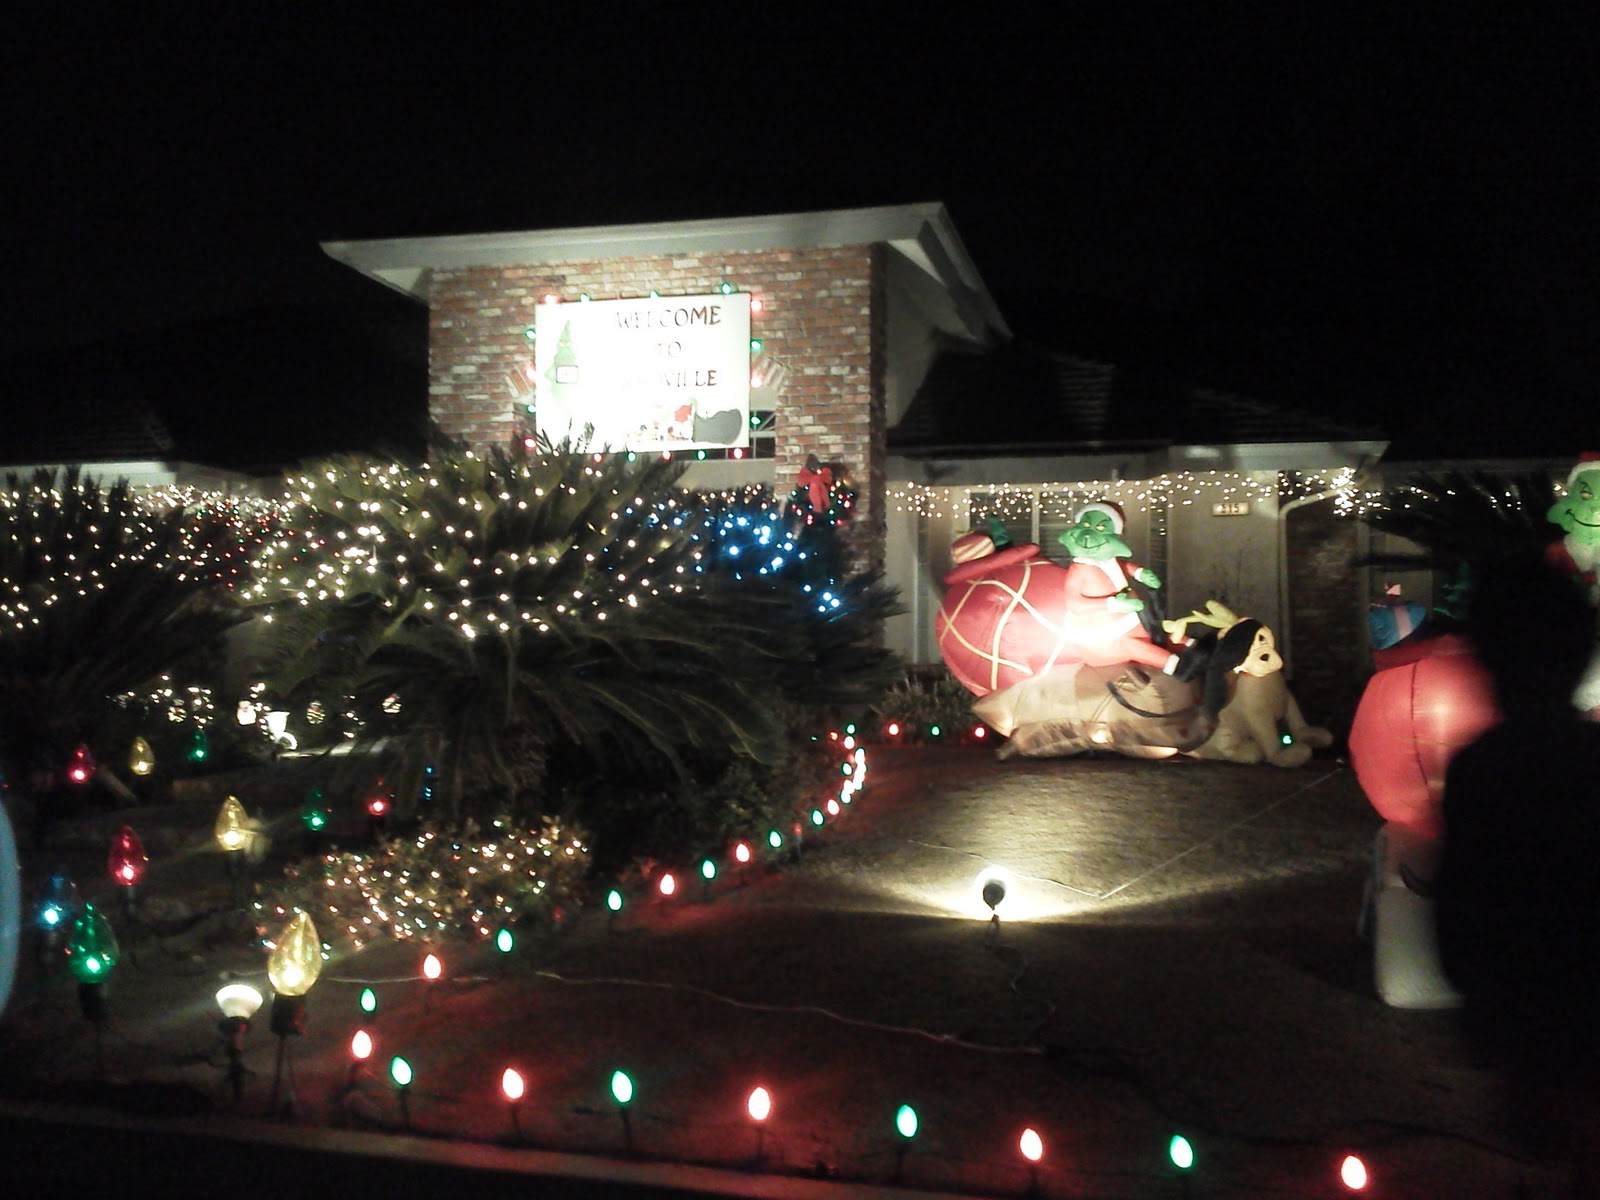 Located At Peach And Alluvial, Clovis Is Gaining A Reputation For Its  Holiday Lane. Less Crowded Than Christmas Tree Lane In Fresno, Holiday Lane  Has Room ...